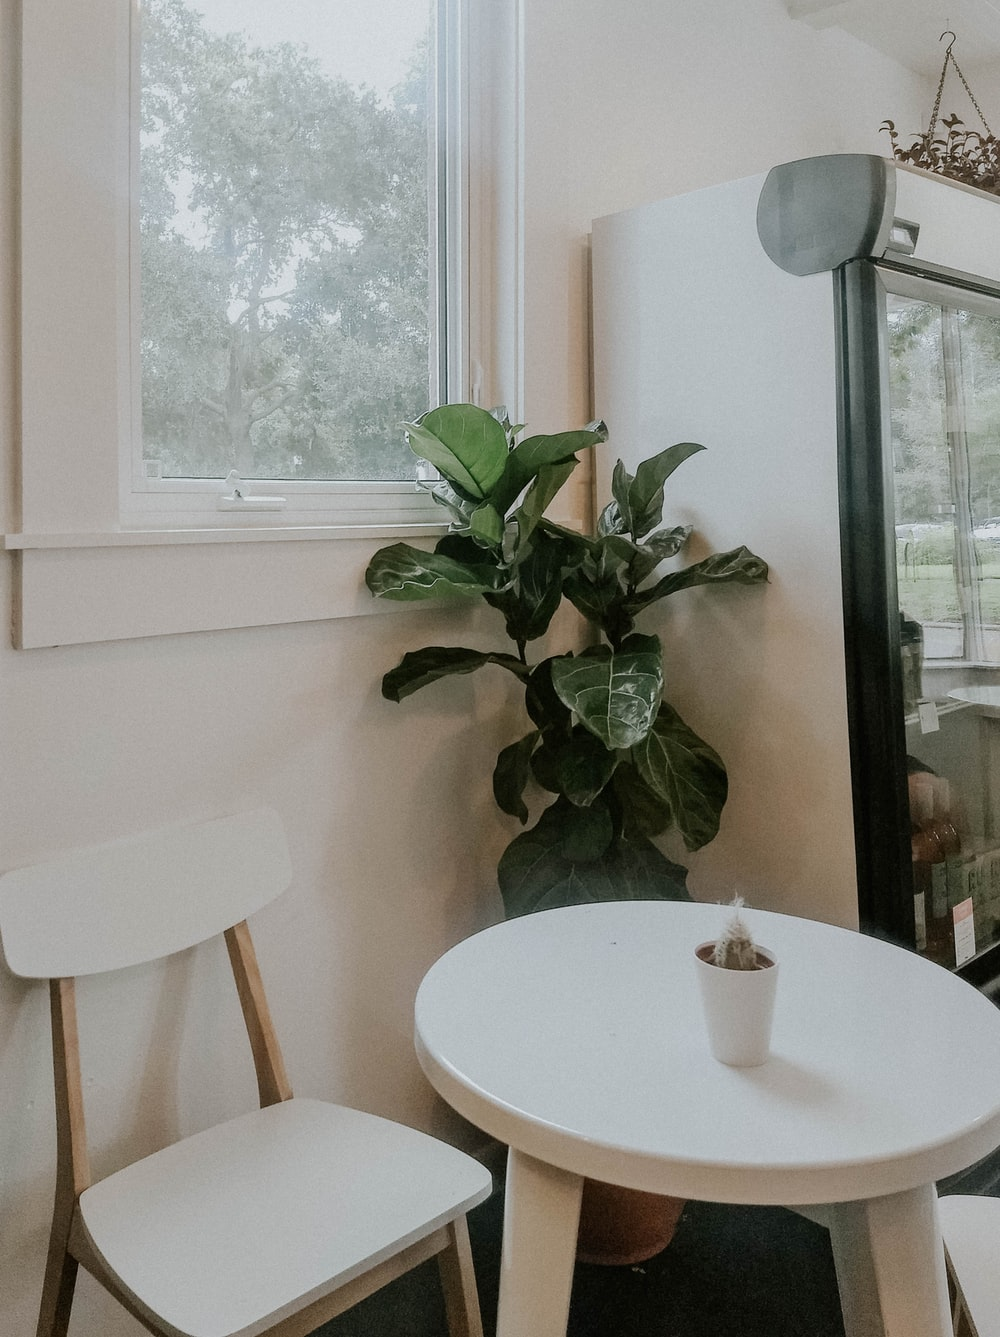 white cup on white wooden table beside window